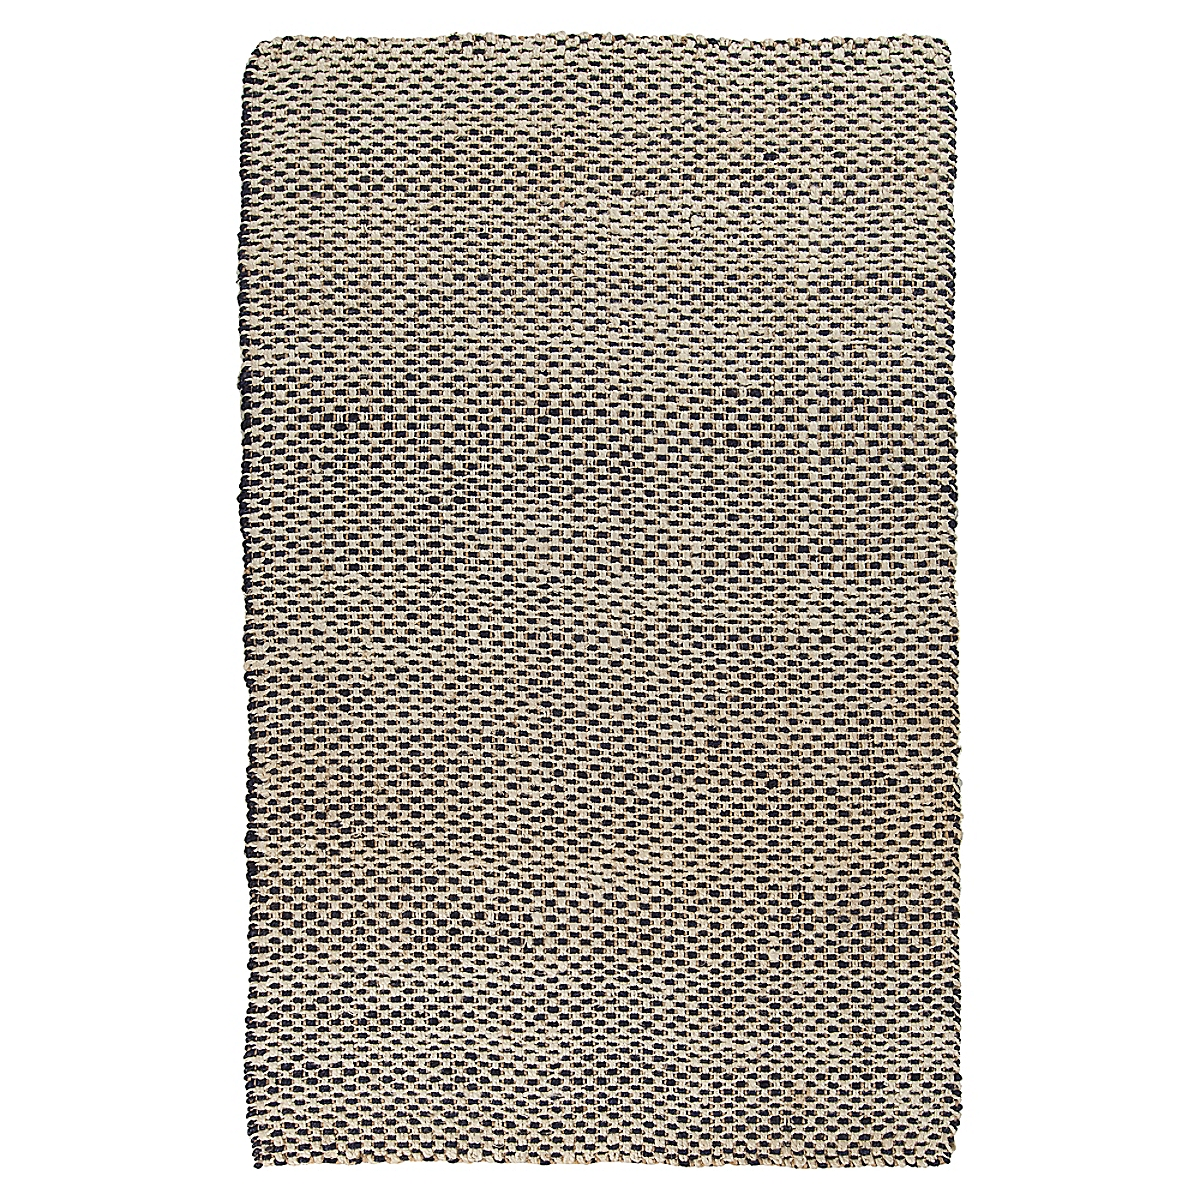 Basketweave Jute Rug - Navy